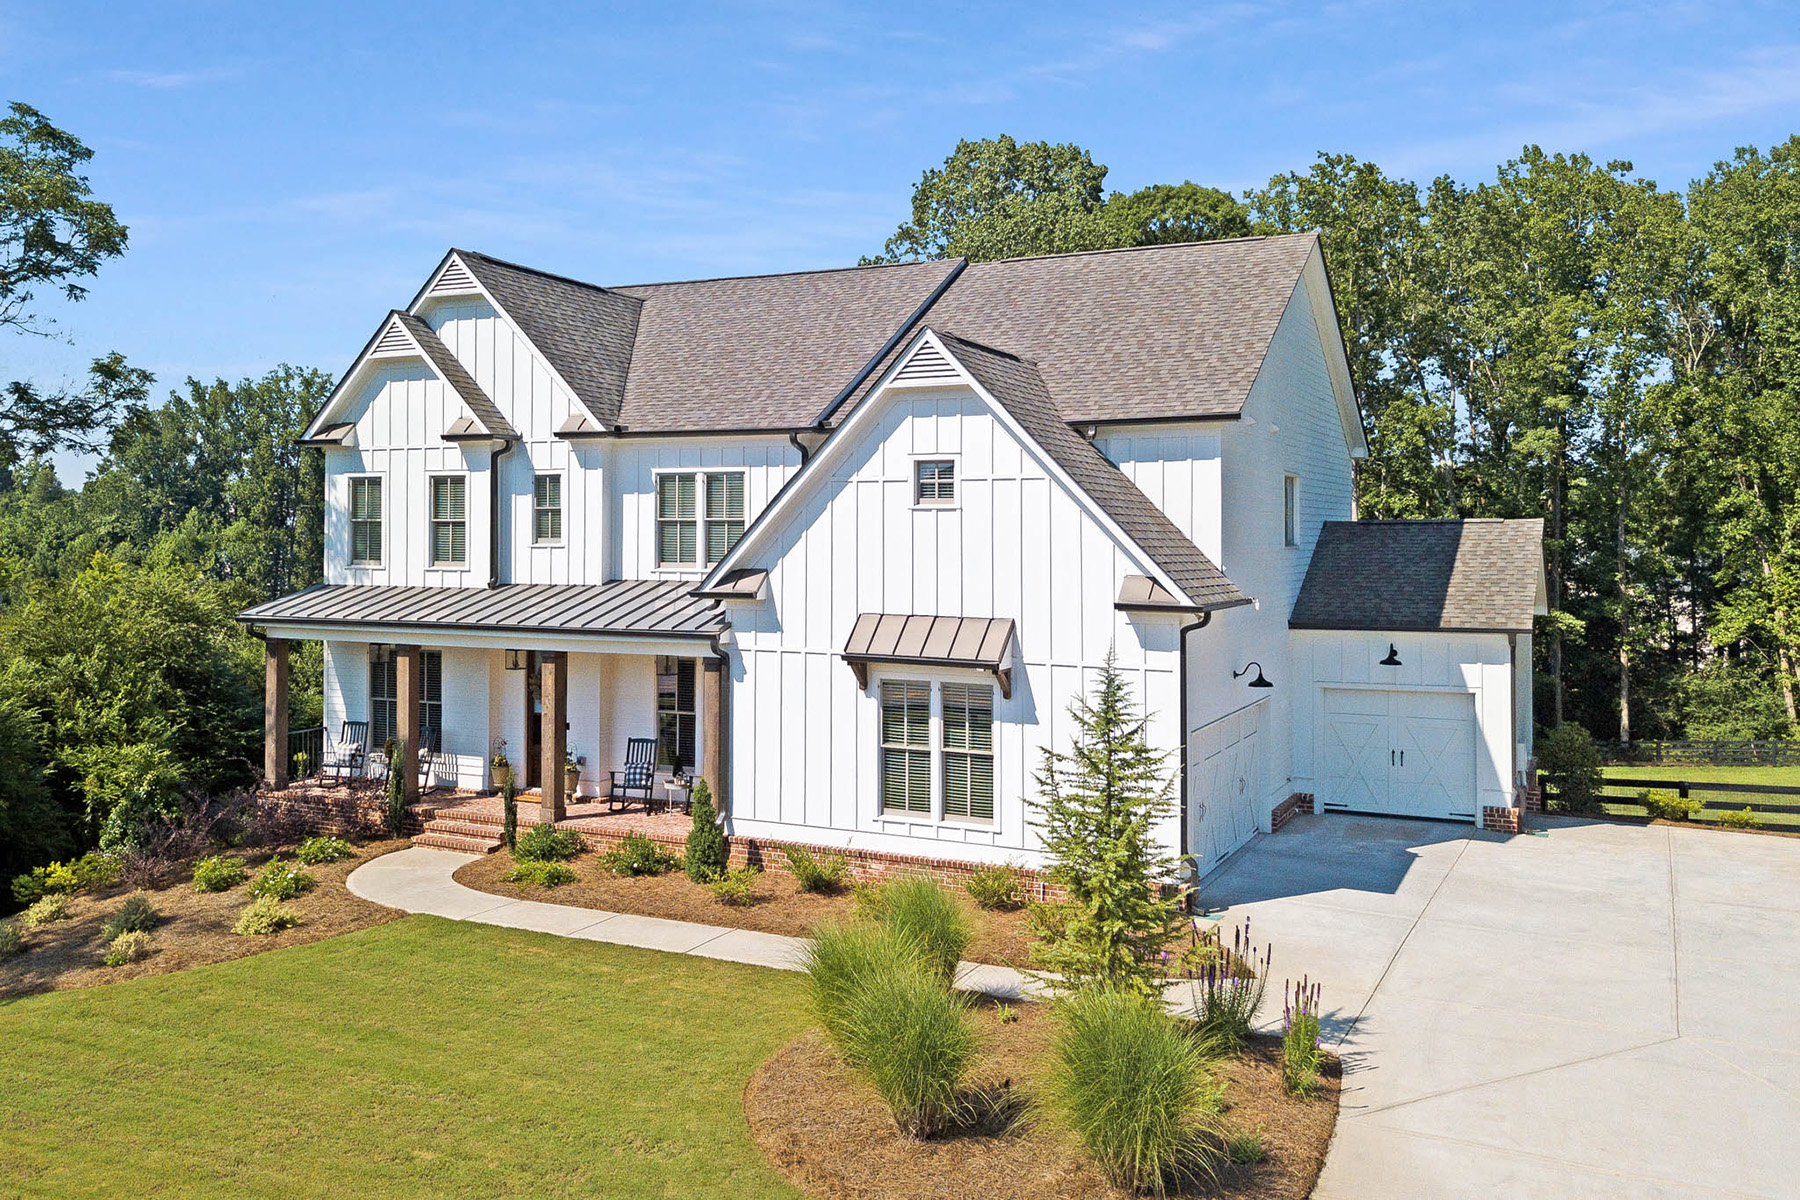 Single Family Homes for Sale at Farmhouse Living With All The Conveniences 5515 Franklin Goldmine Road Cumming, Georgia 30028 United States